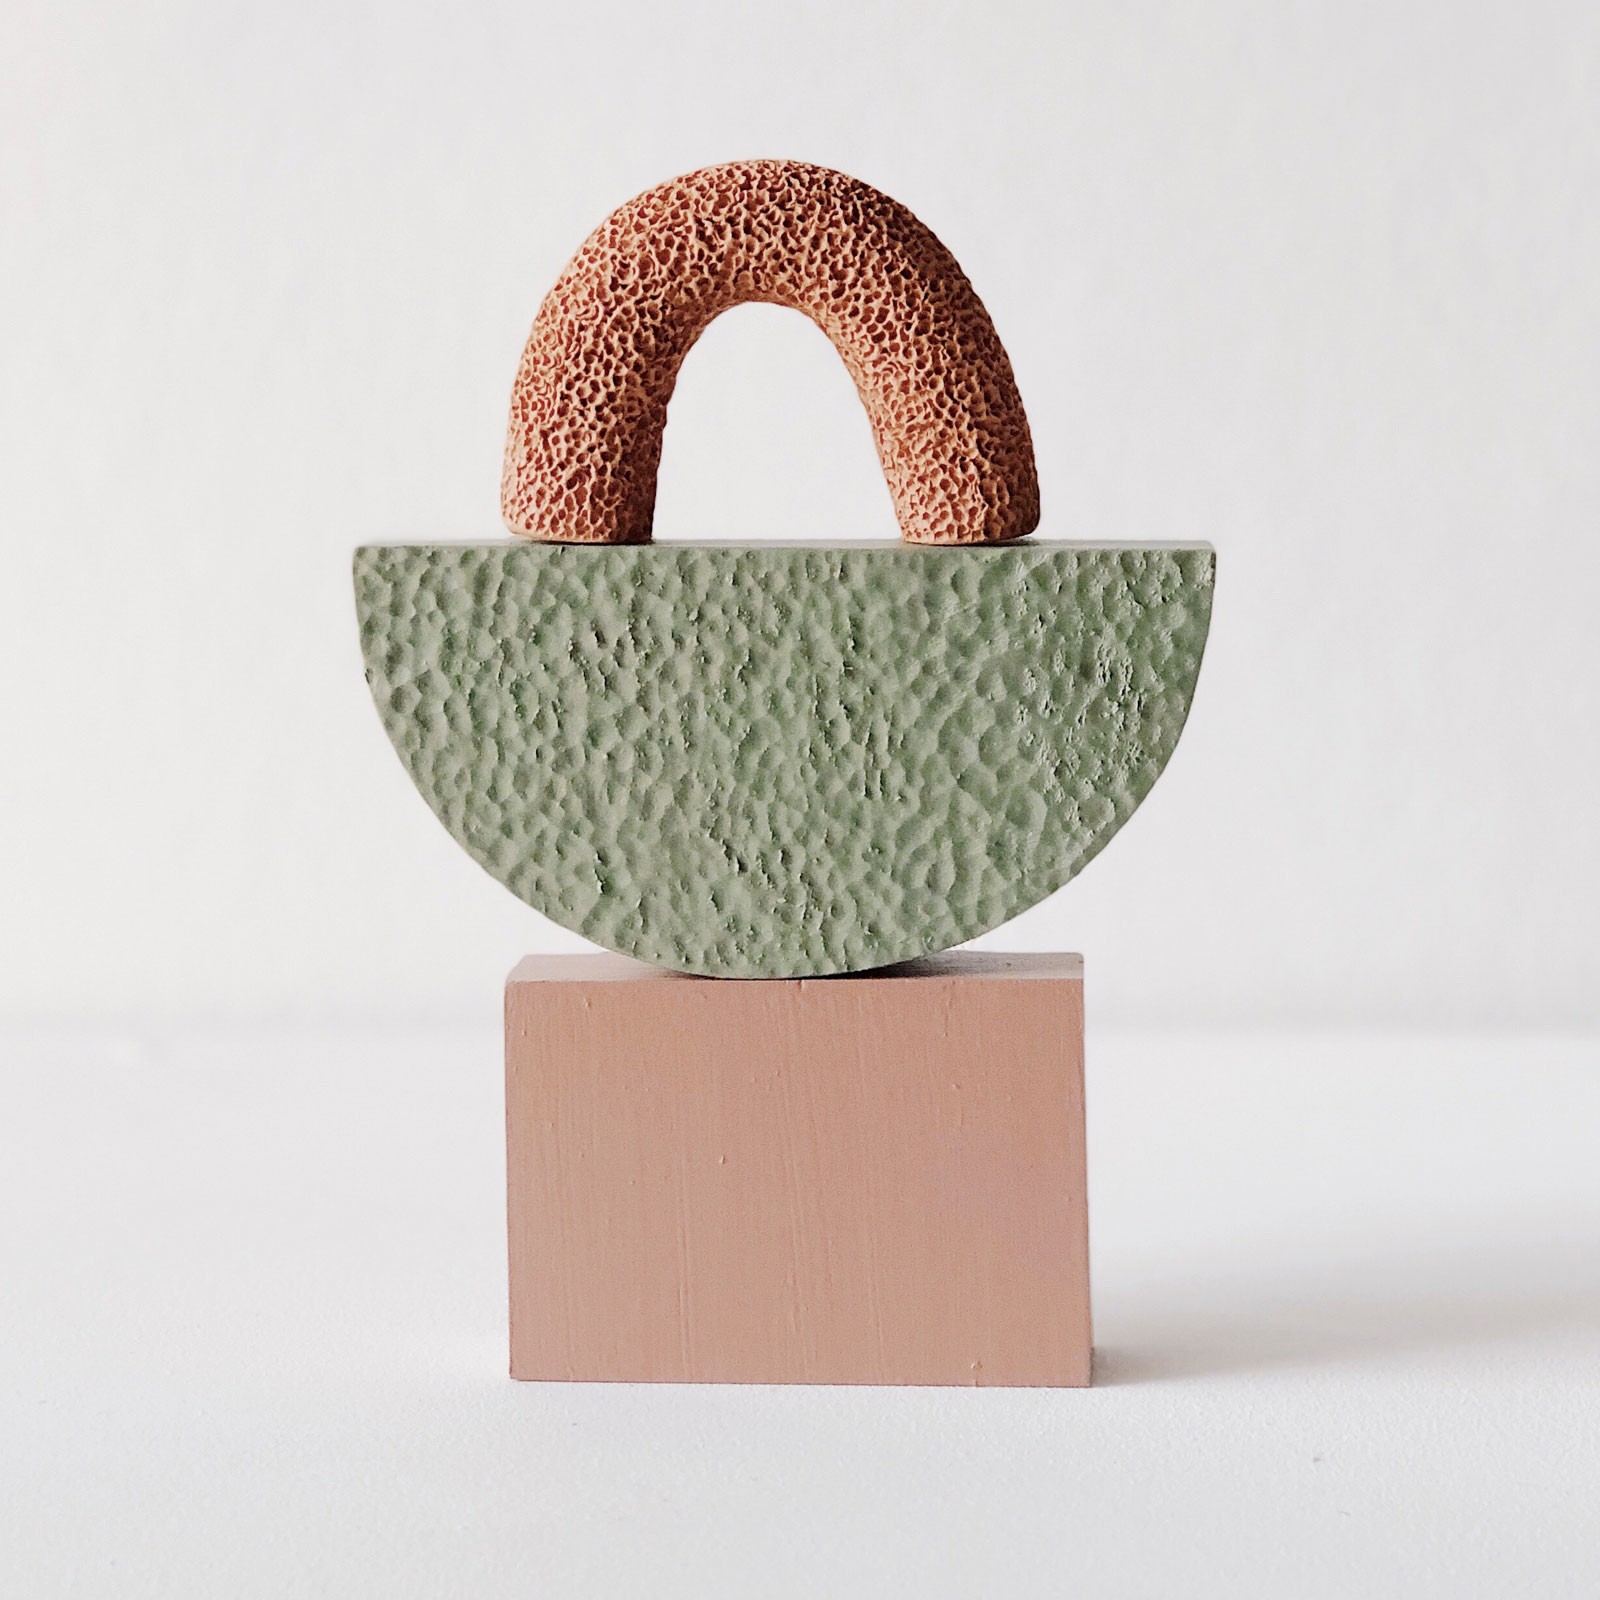 Small Space Sculpture In Terracotta And Timber By Hearth Collective (alichia Van Rhijn) 02